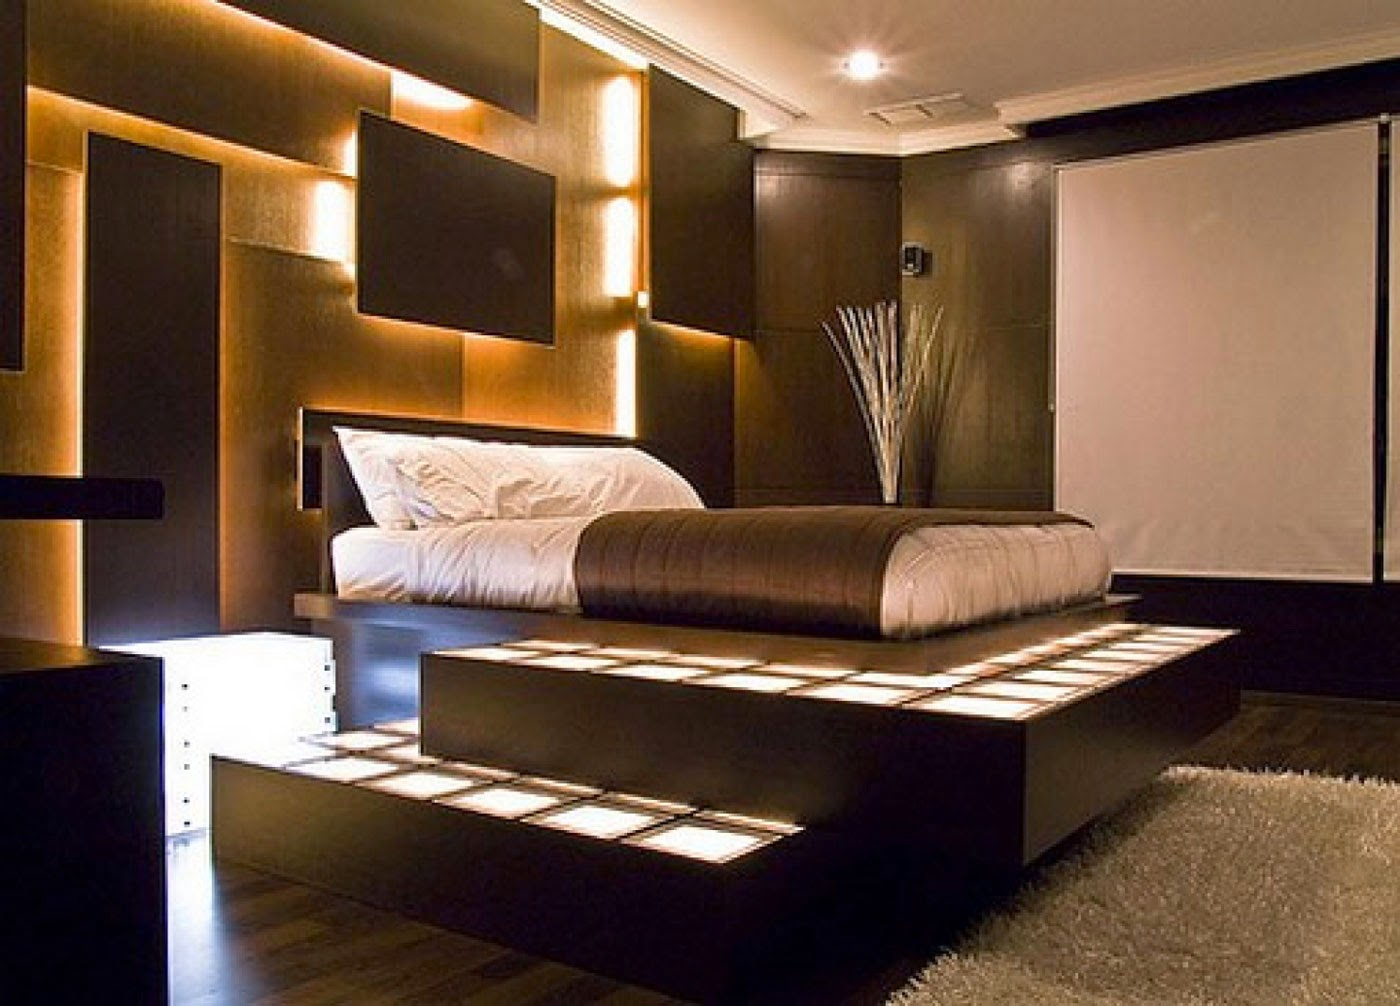 Idea-Room-Design-Bedroom-Minimalist-Contemporary